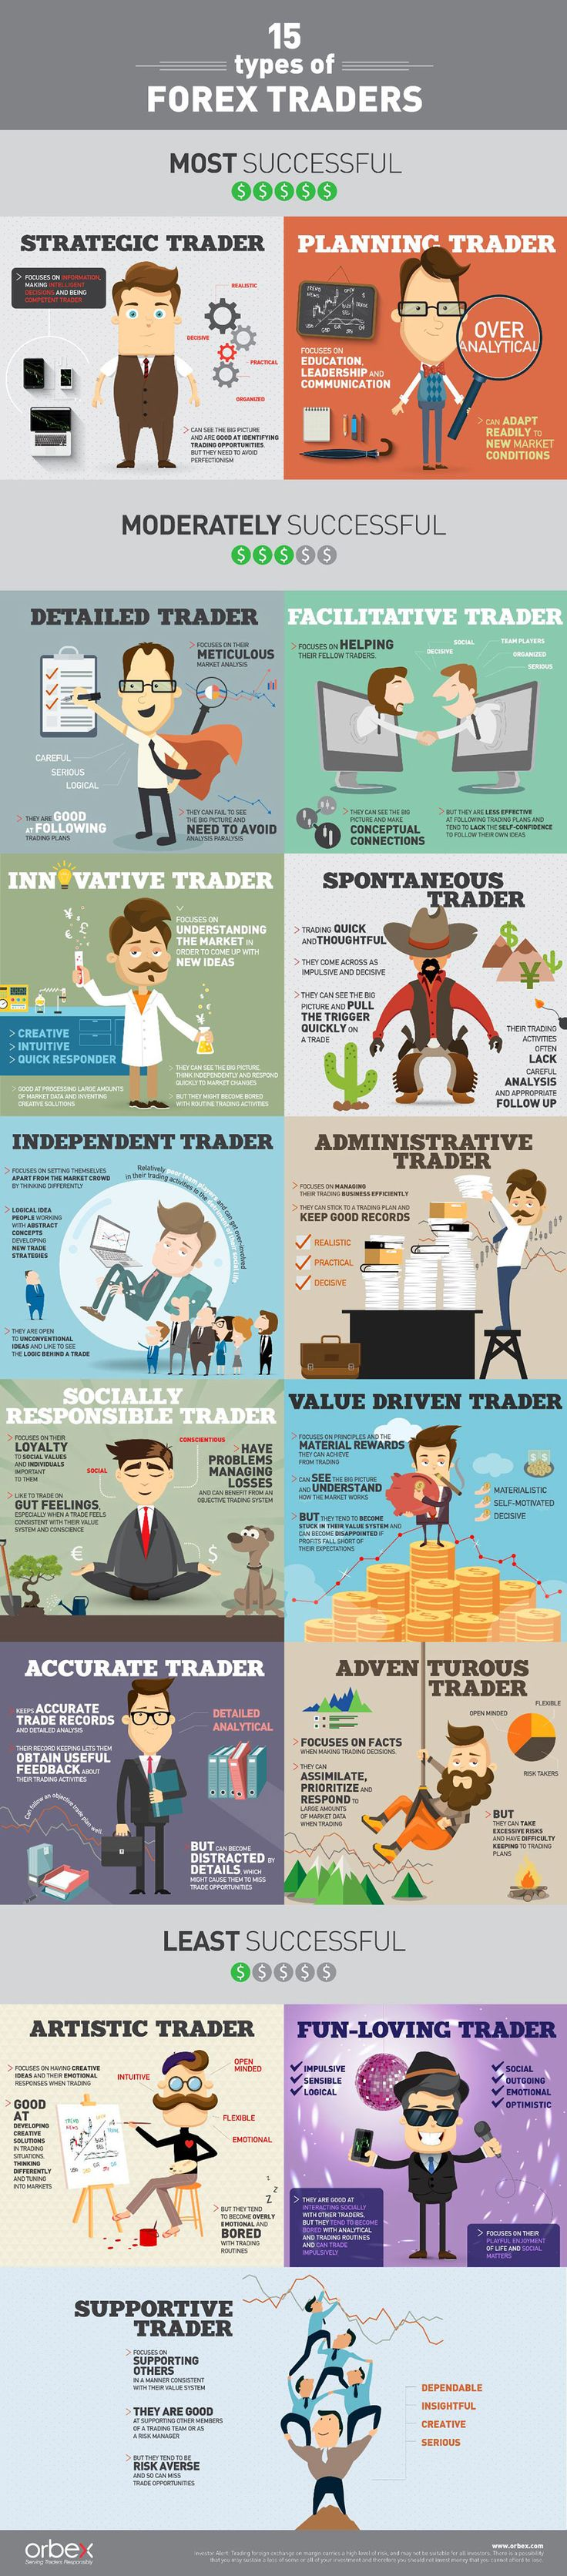 Types Of Forex Traders Infographic. Topic: day trading, investing, investor, fx